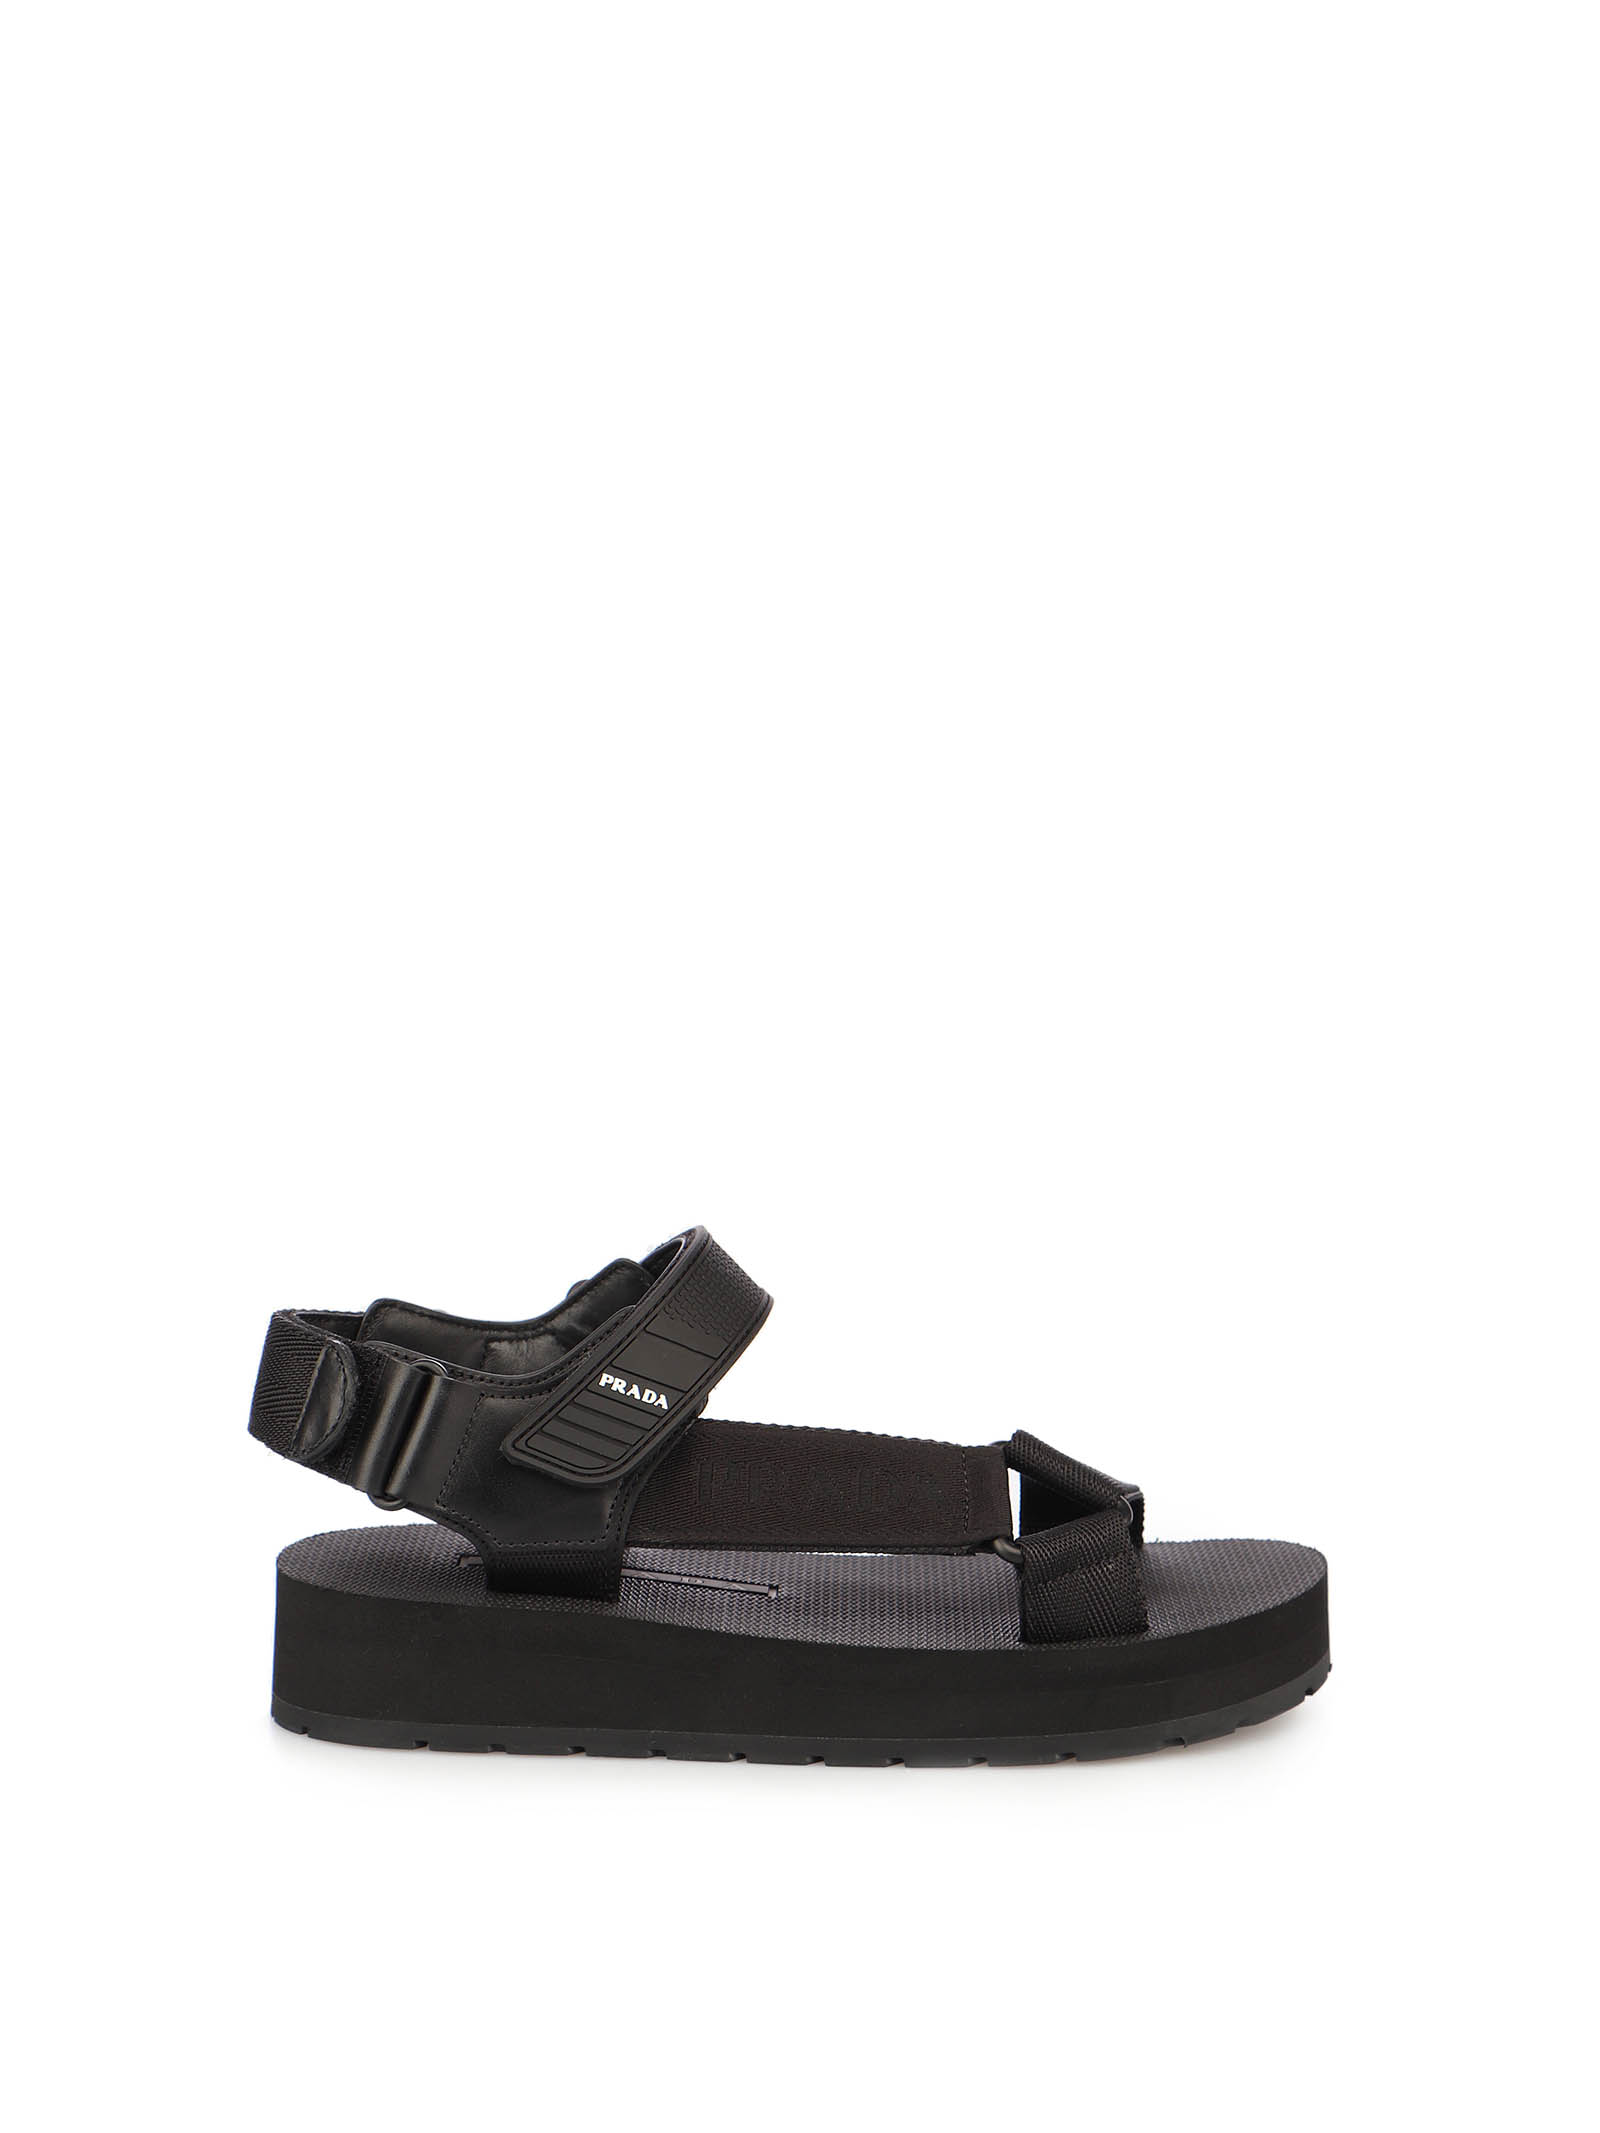 Picture of Prada | Leather And Nylon Sandals